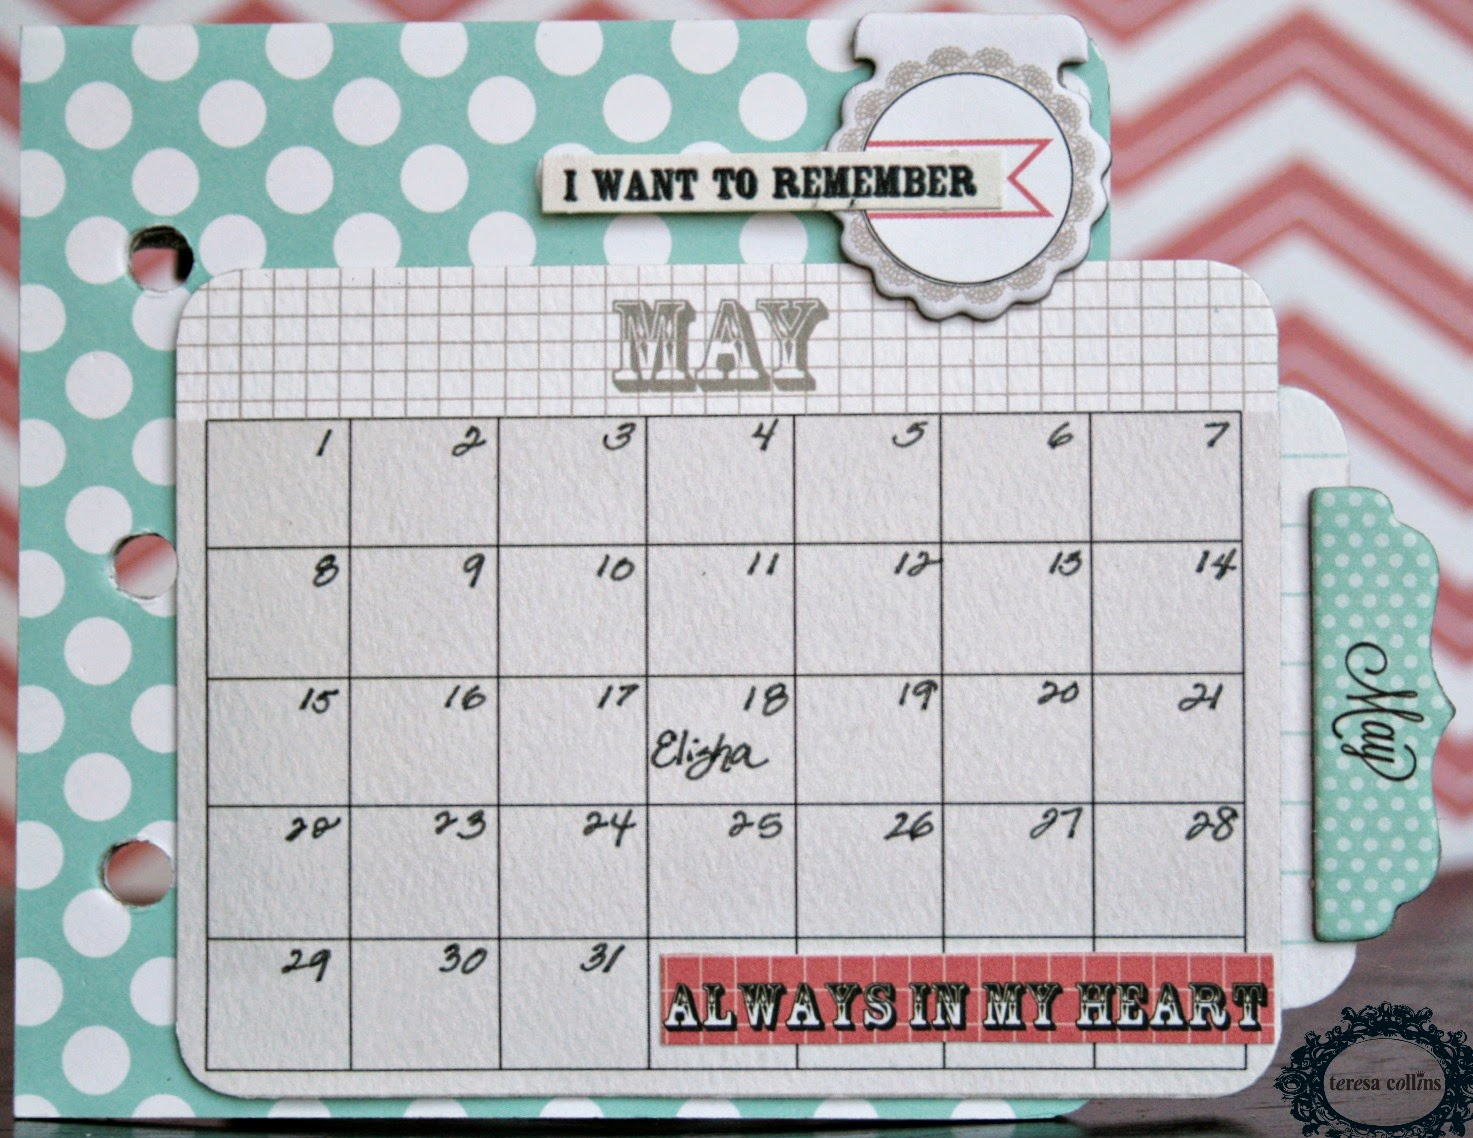 May Calendar Book : Cherinspirations calendar mini album tutorial using